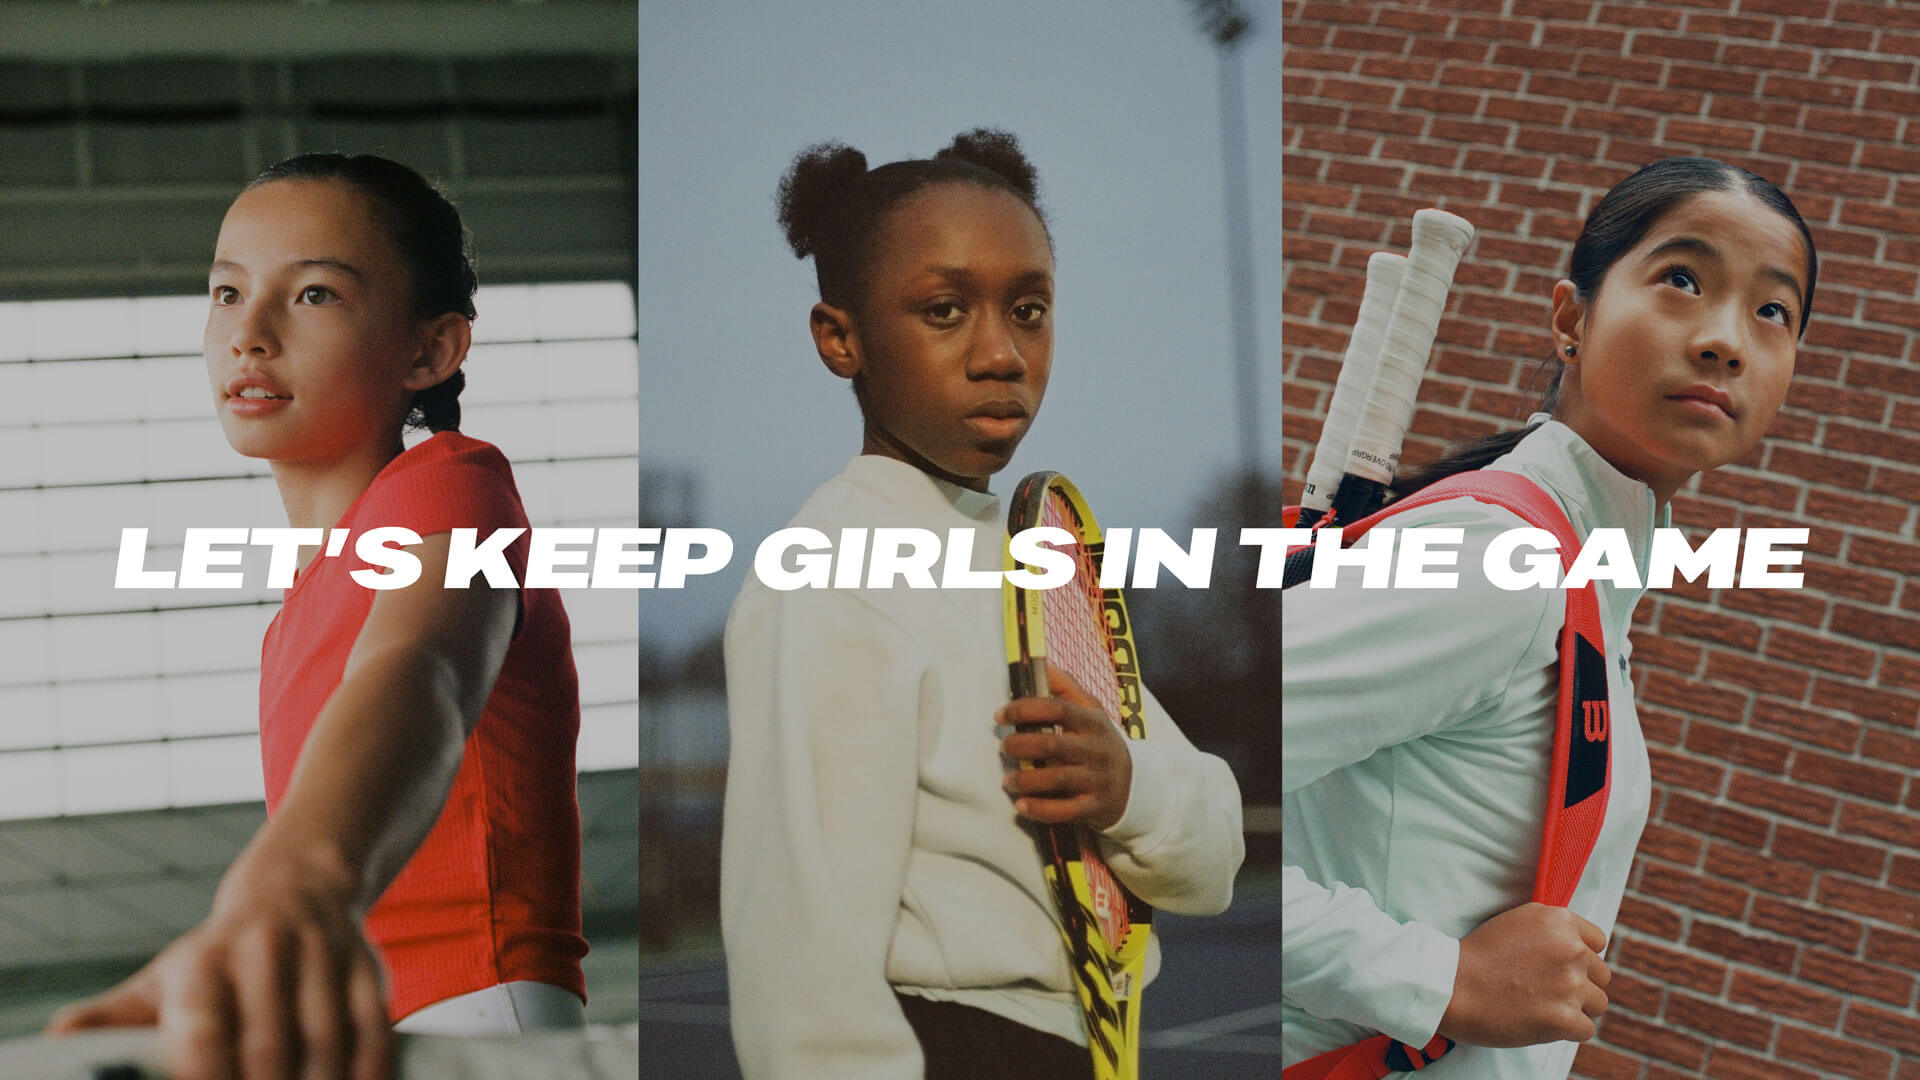 Tennis Canada - Let's keep girls in the game